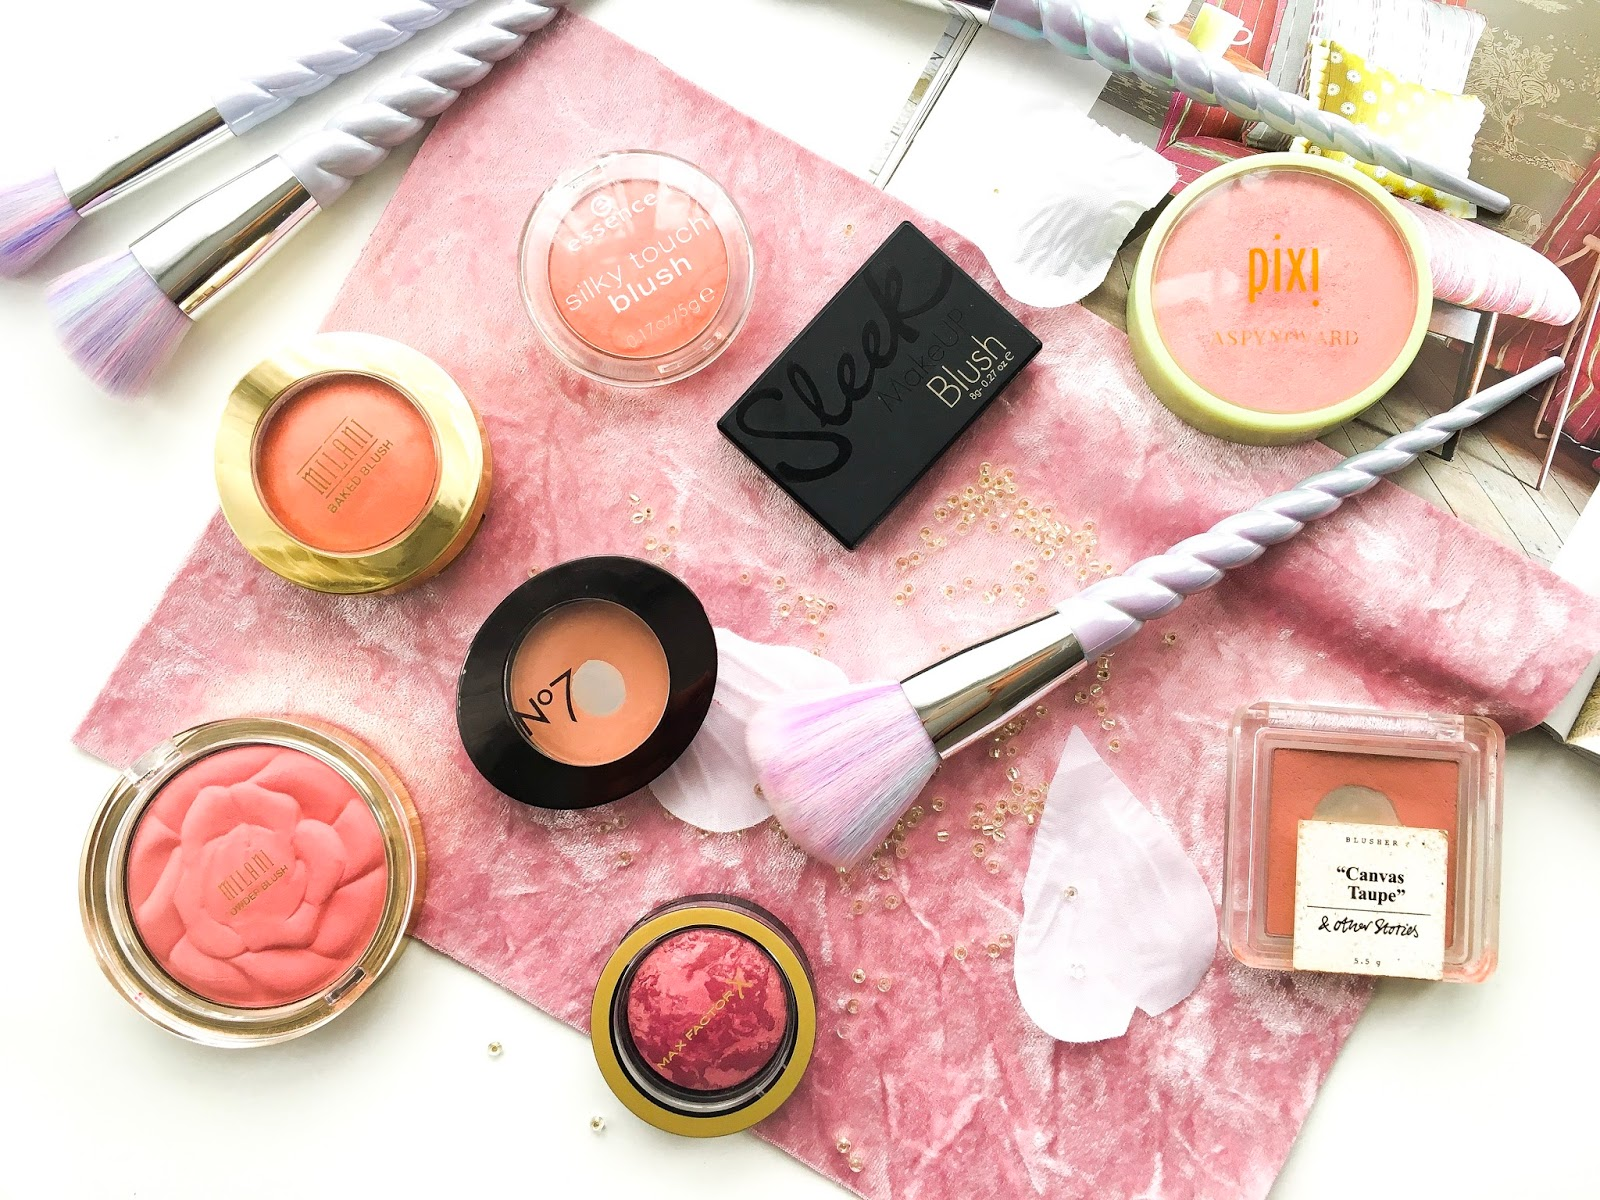 best drugstore blushers uk, best blushers from the high street, top affordable blushers for medium skin, best blushers for medium skin, essence silky touch blush, milani blusher, sleek makeup blusher suede, pixi glow-y powder, max factor creme puff blush, no7 blush honey,